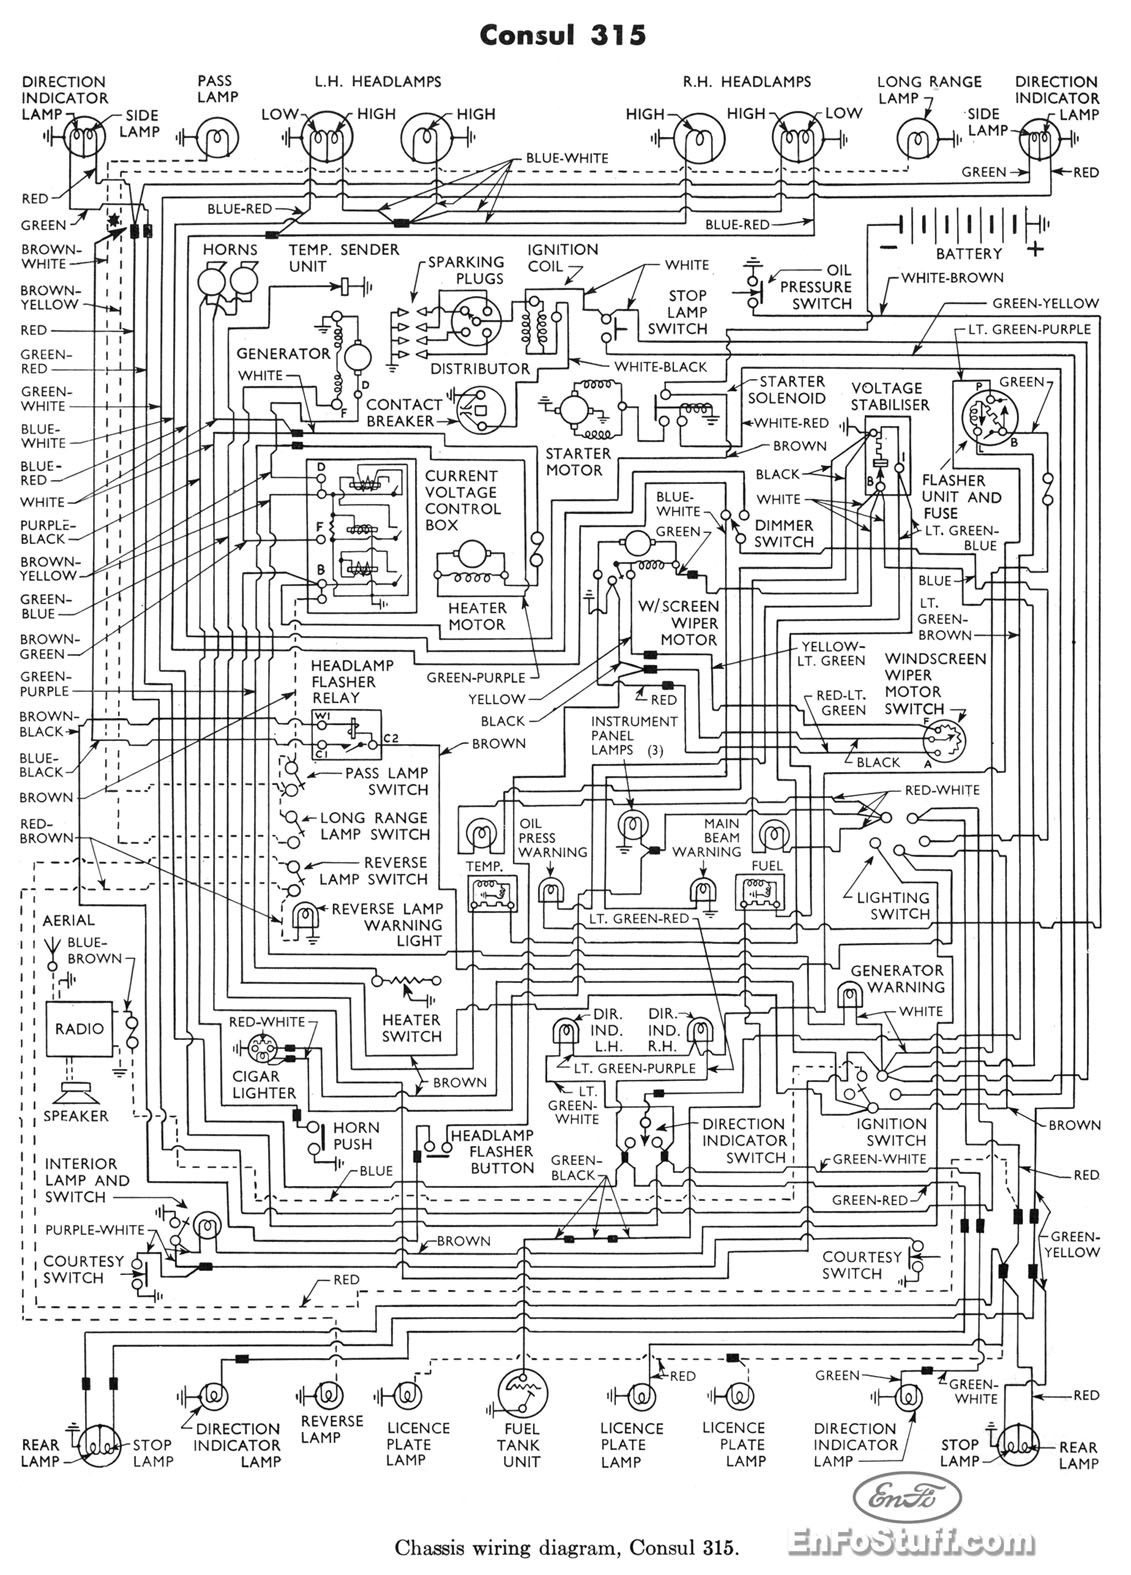 wiring diagram for 3930 ford tractor the wiring diagram ford tractor wiring harness diagram vidim wiring diagram wiring diagram